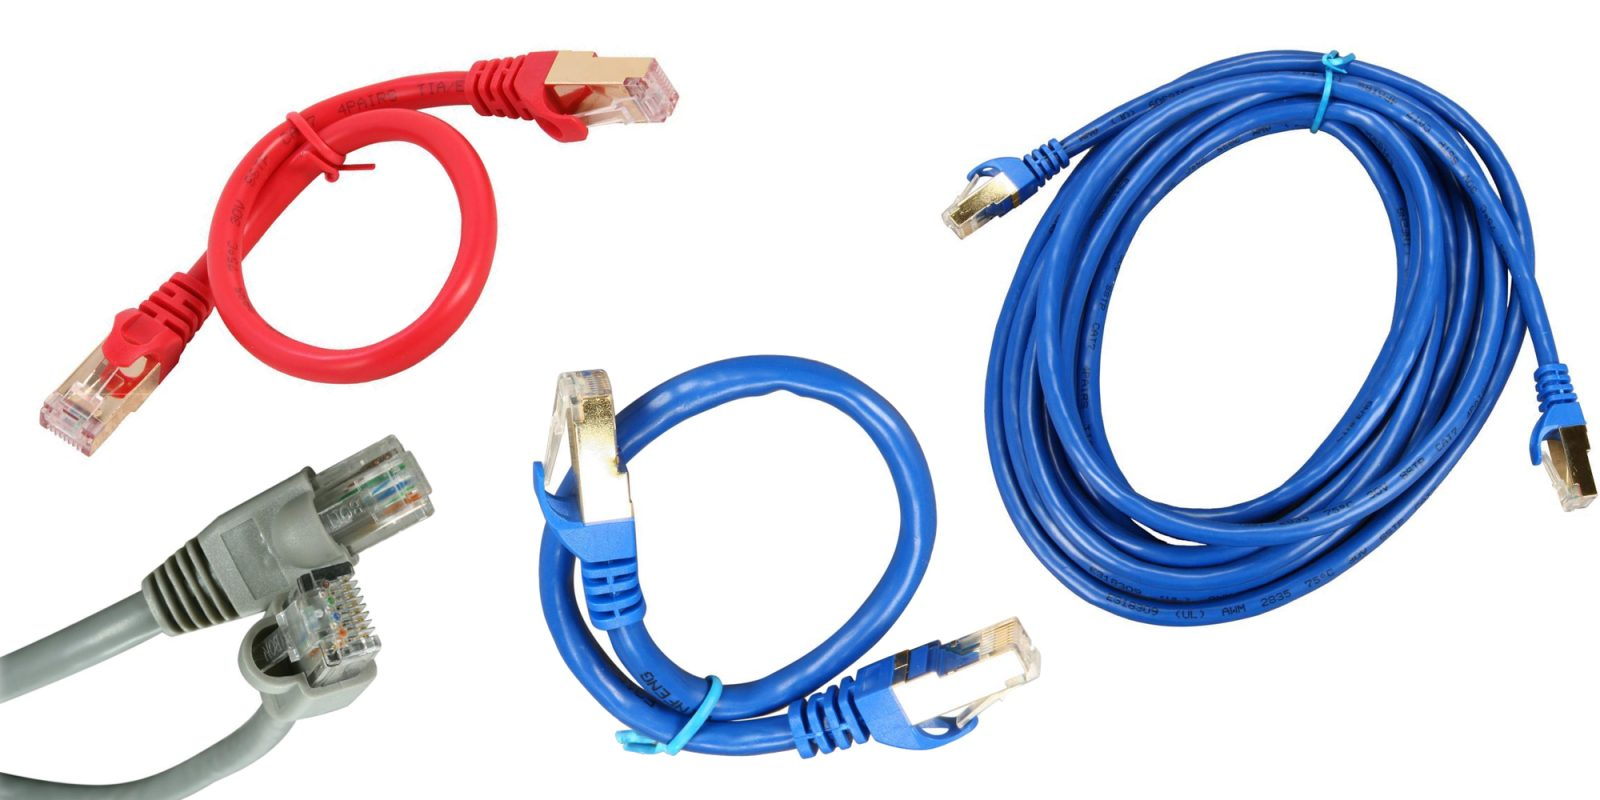 hight resolution of expand your home network with up to 75 off cat7 ethernet cables from 2 50 shipped more